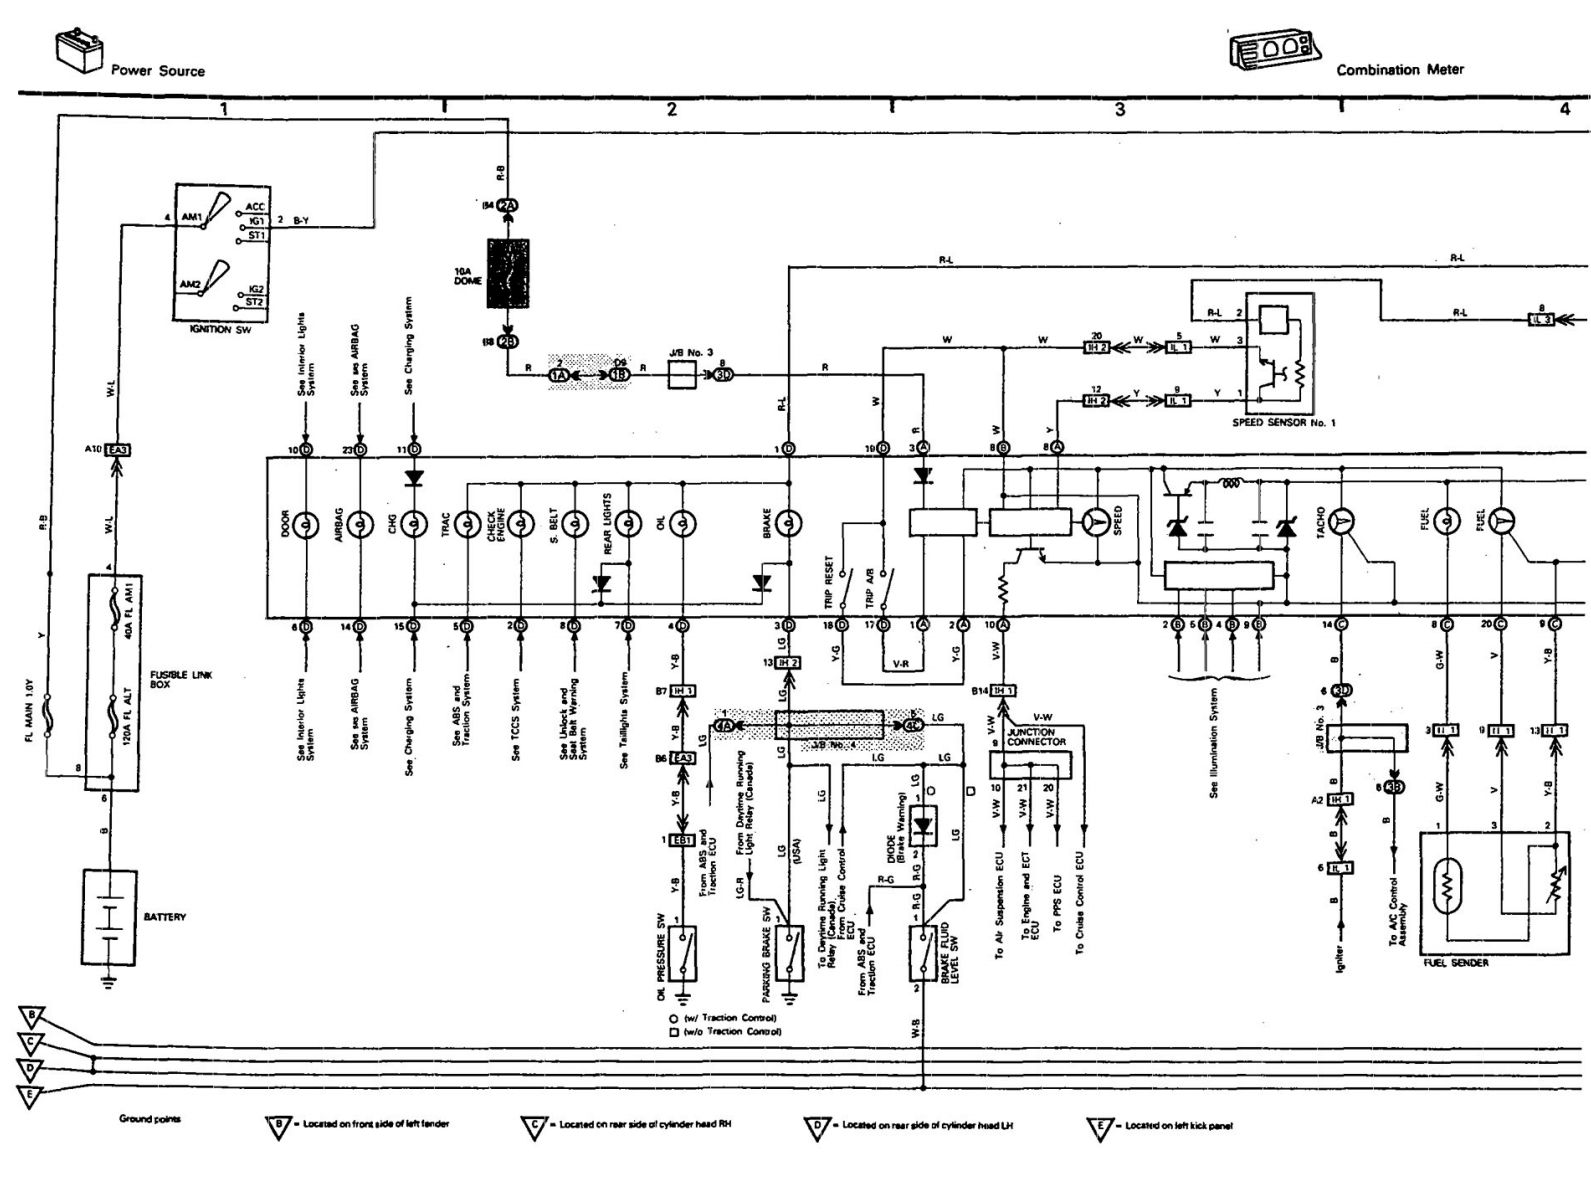 Wiring Diagram For Instrument Cluster For 91 LS400 ClubLexus